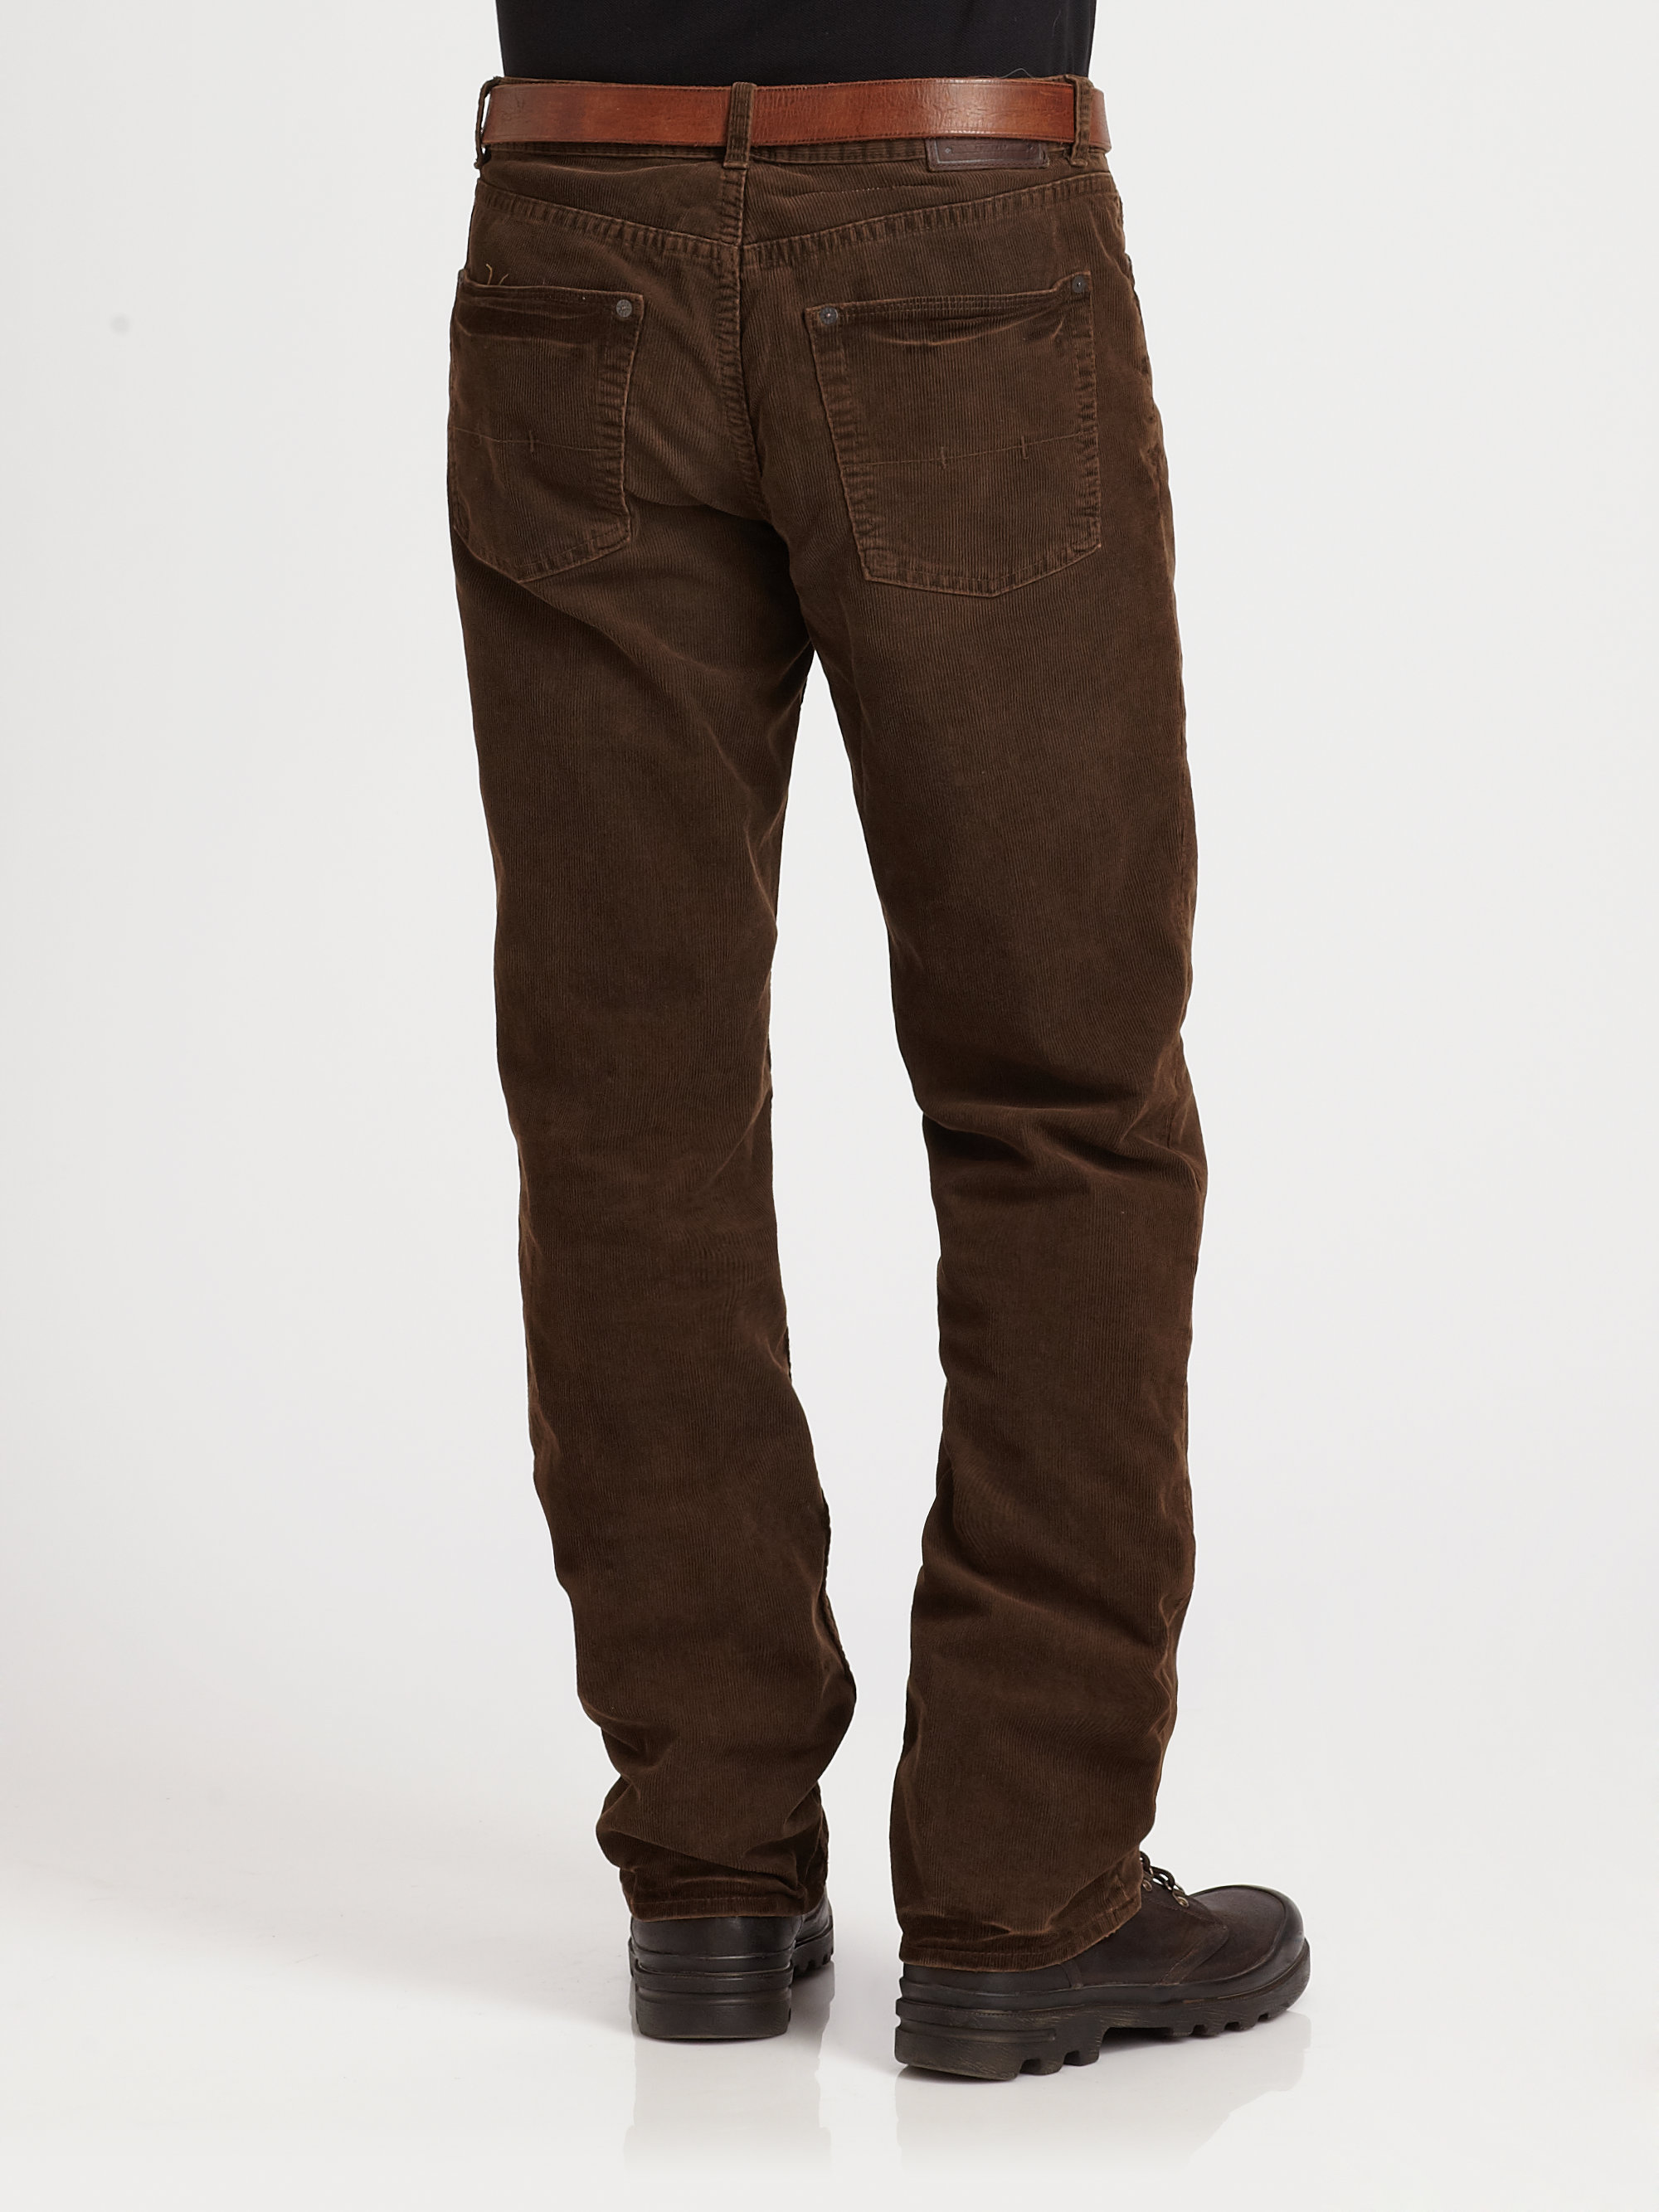 Polo ralph lauren Straightfit Corduroy Pant in Brown for Men | Lyst